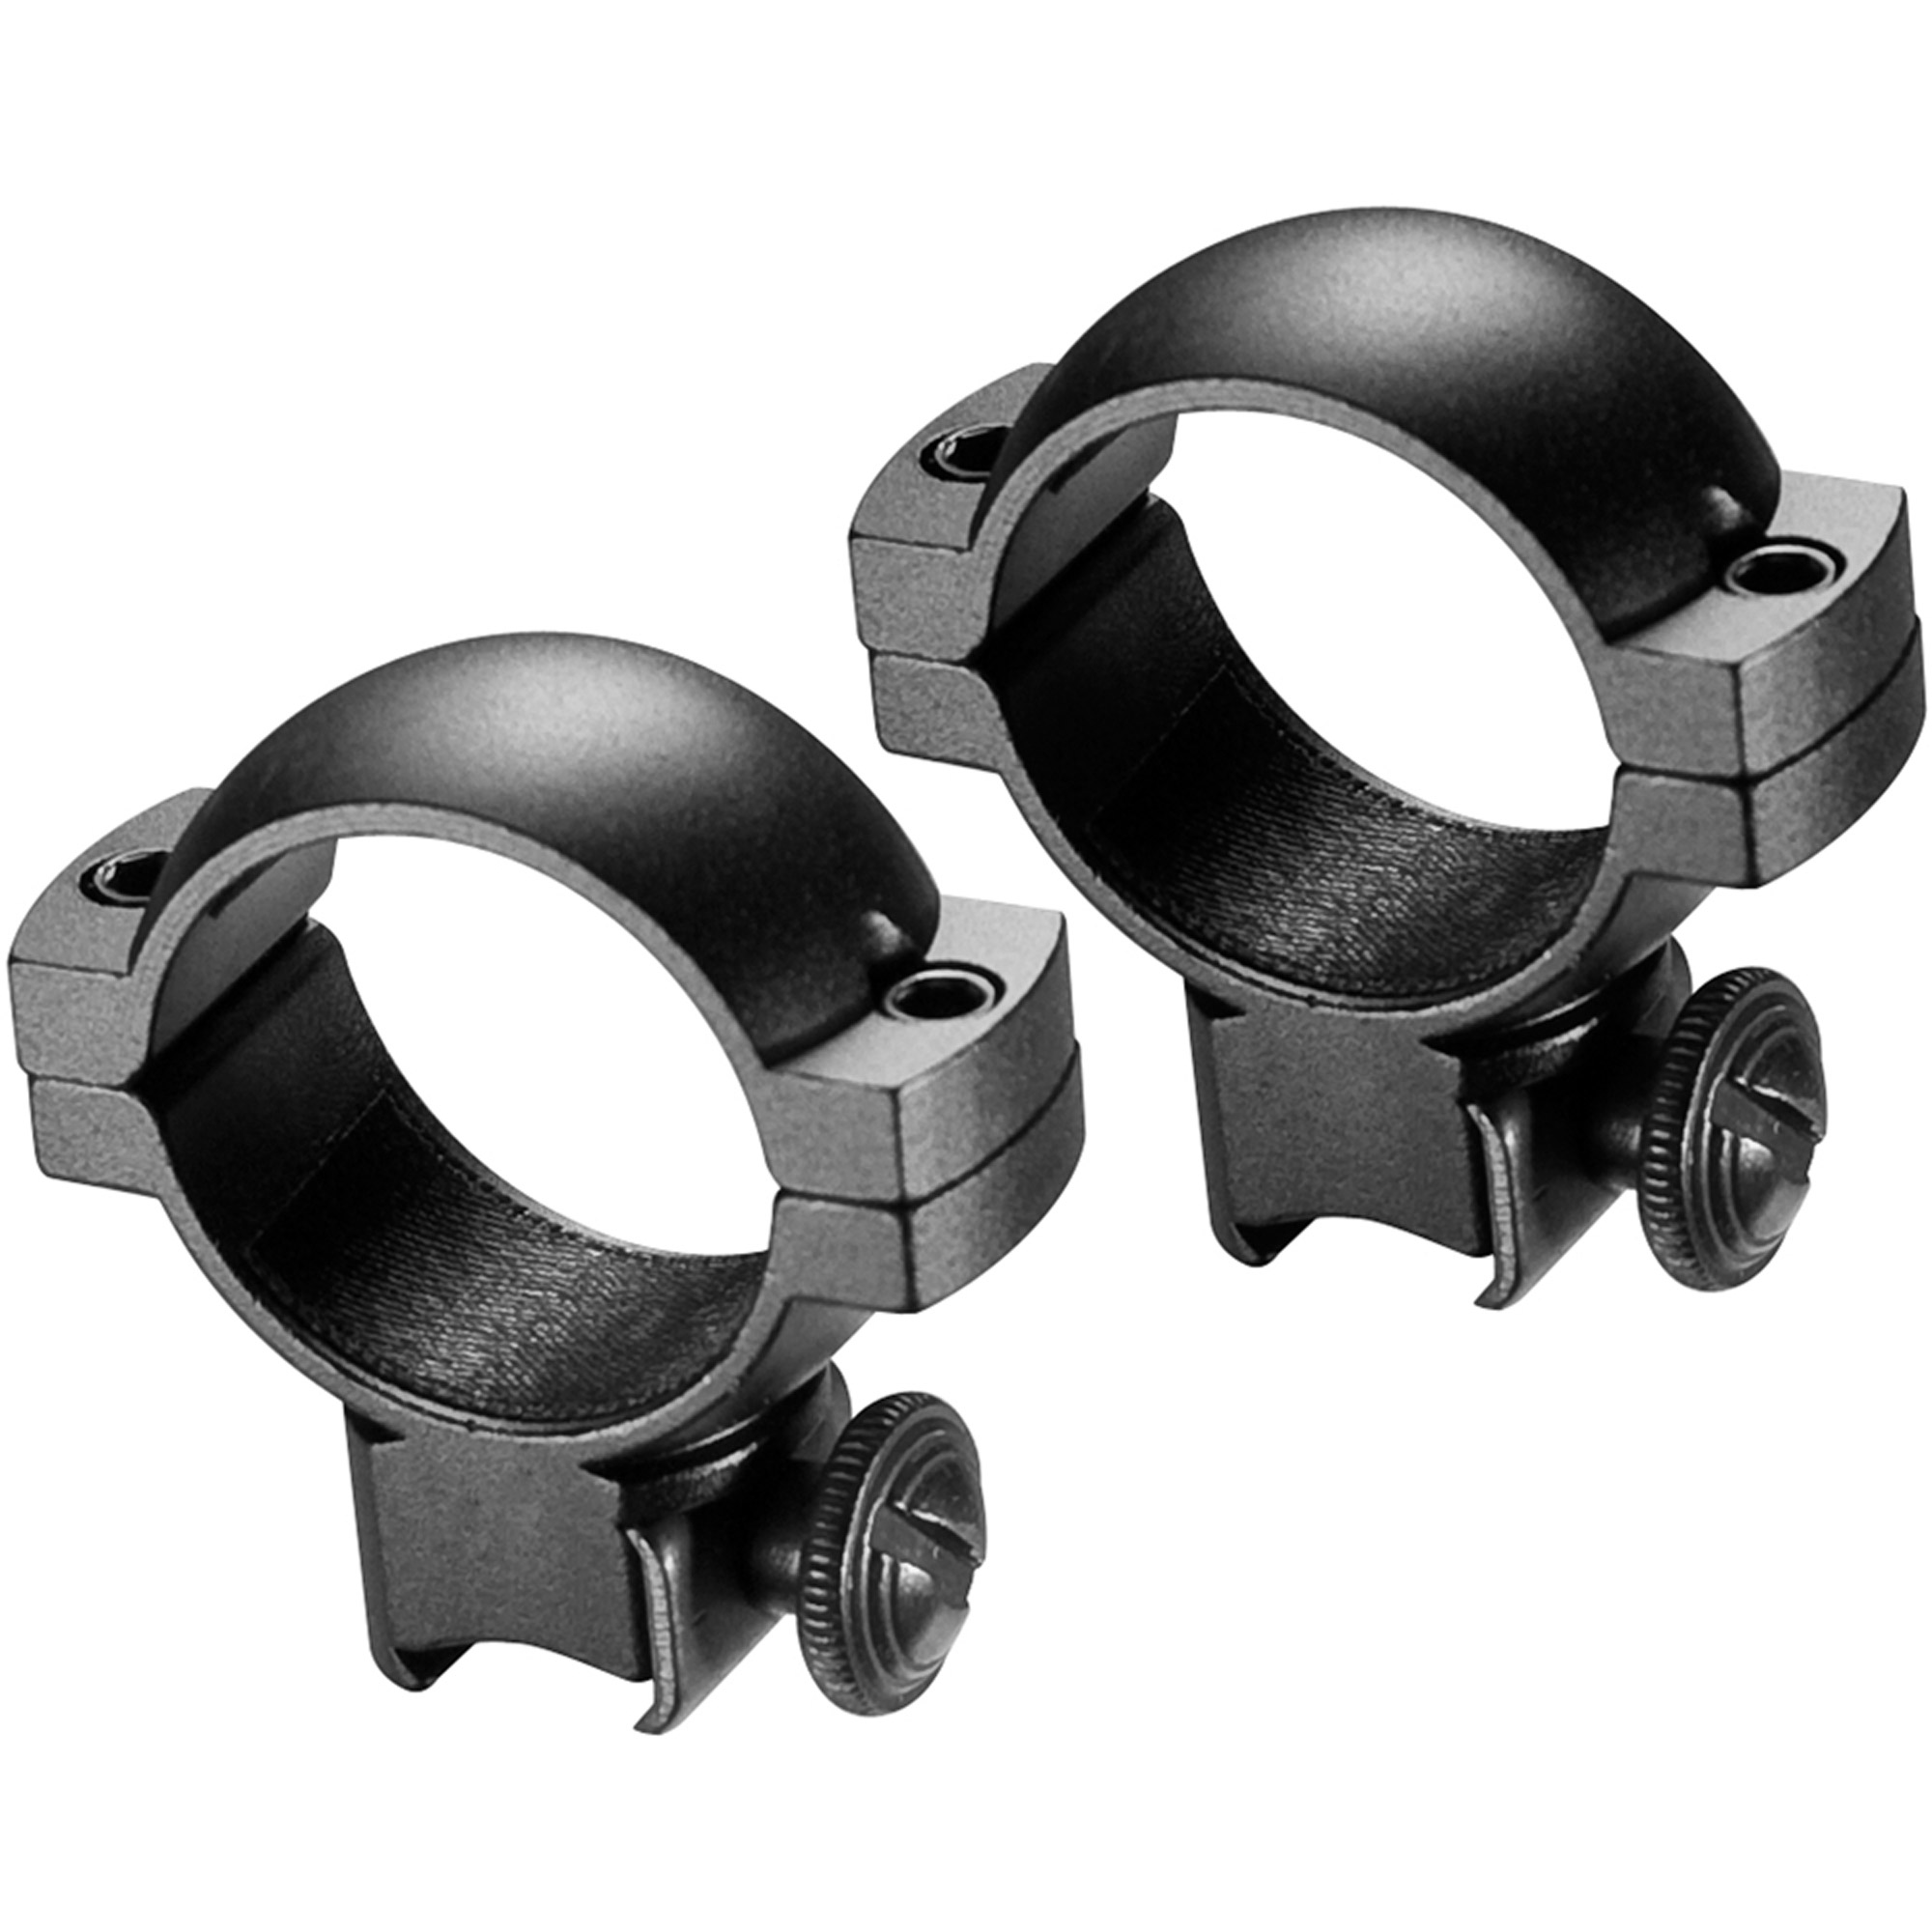 Barska Optics 30mm Standard Dovetail Rings